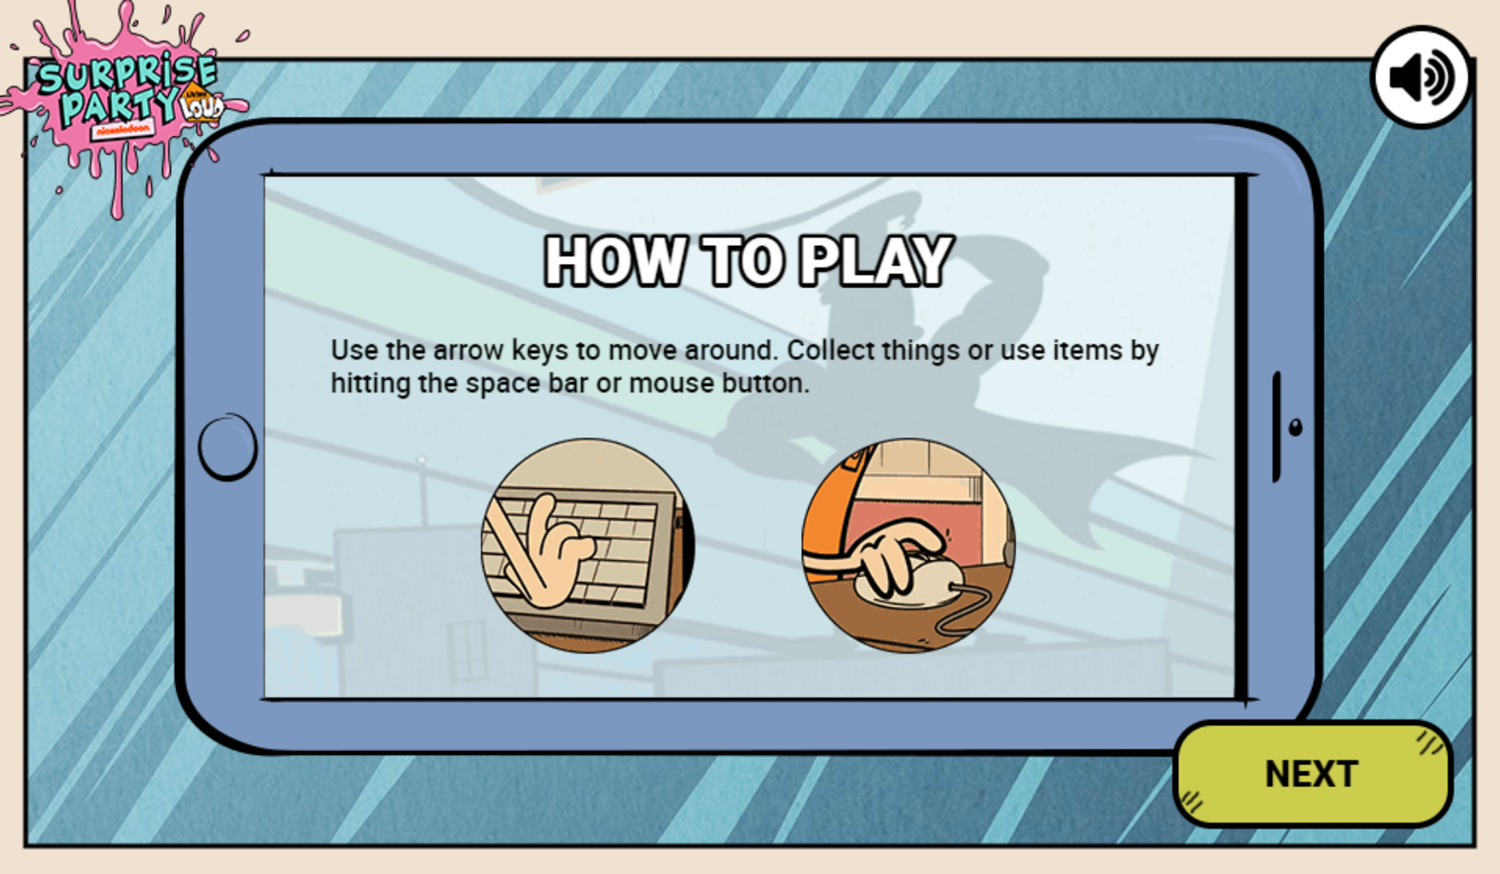 Loud House Surprise Party Game How To Play Screenshot.